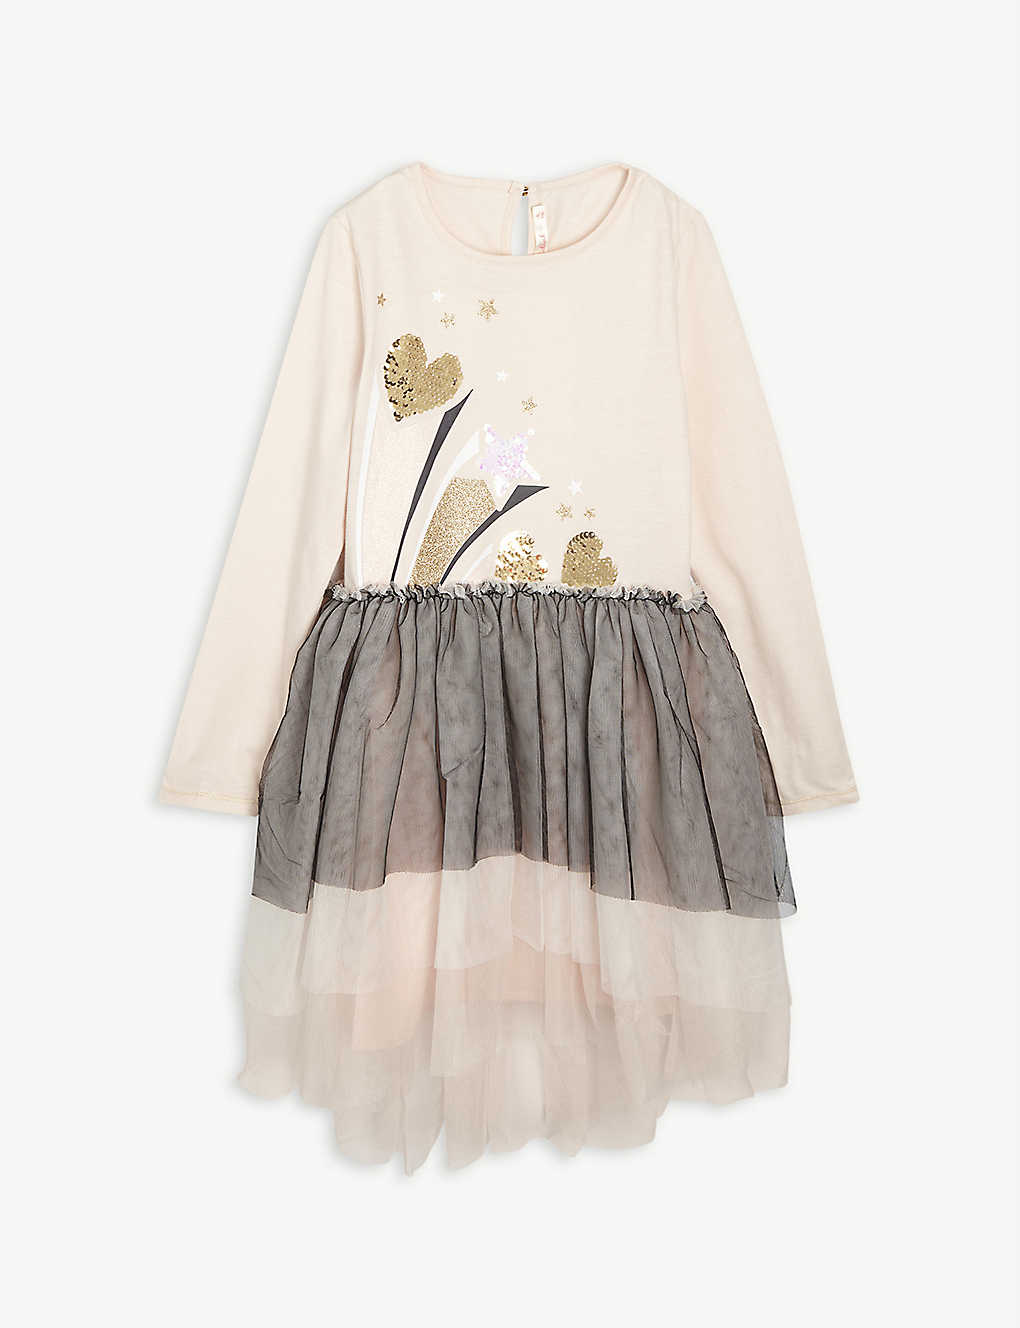 BILLIE BLUSH: Embellished tulle dress 4-12 years